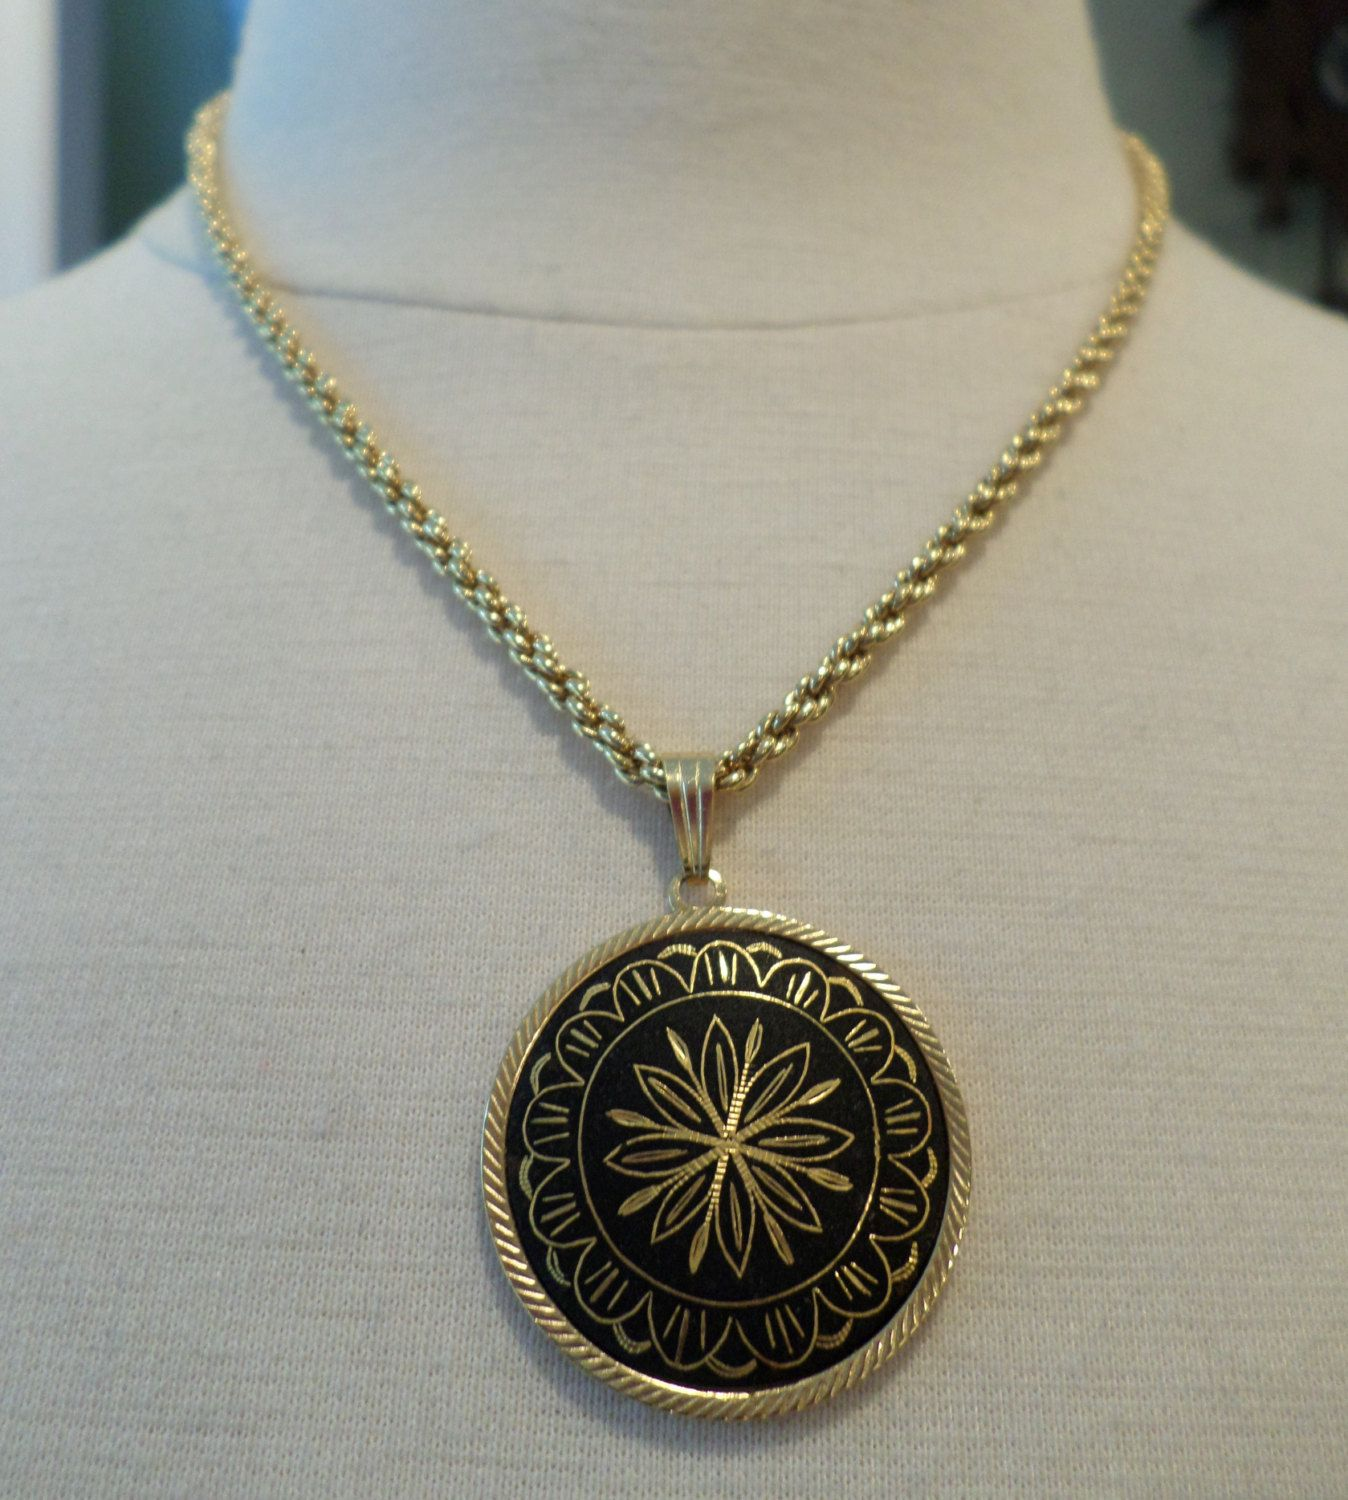 Vintage gold tone rope chain with slide damascene pendant by